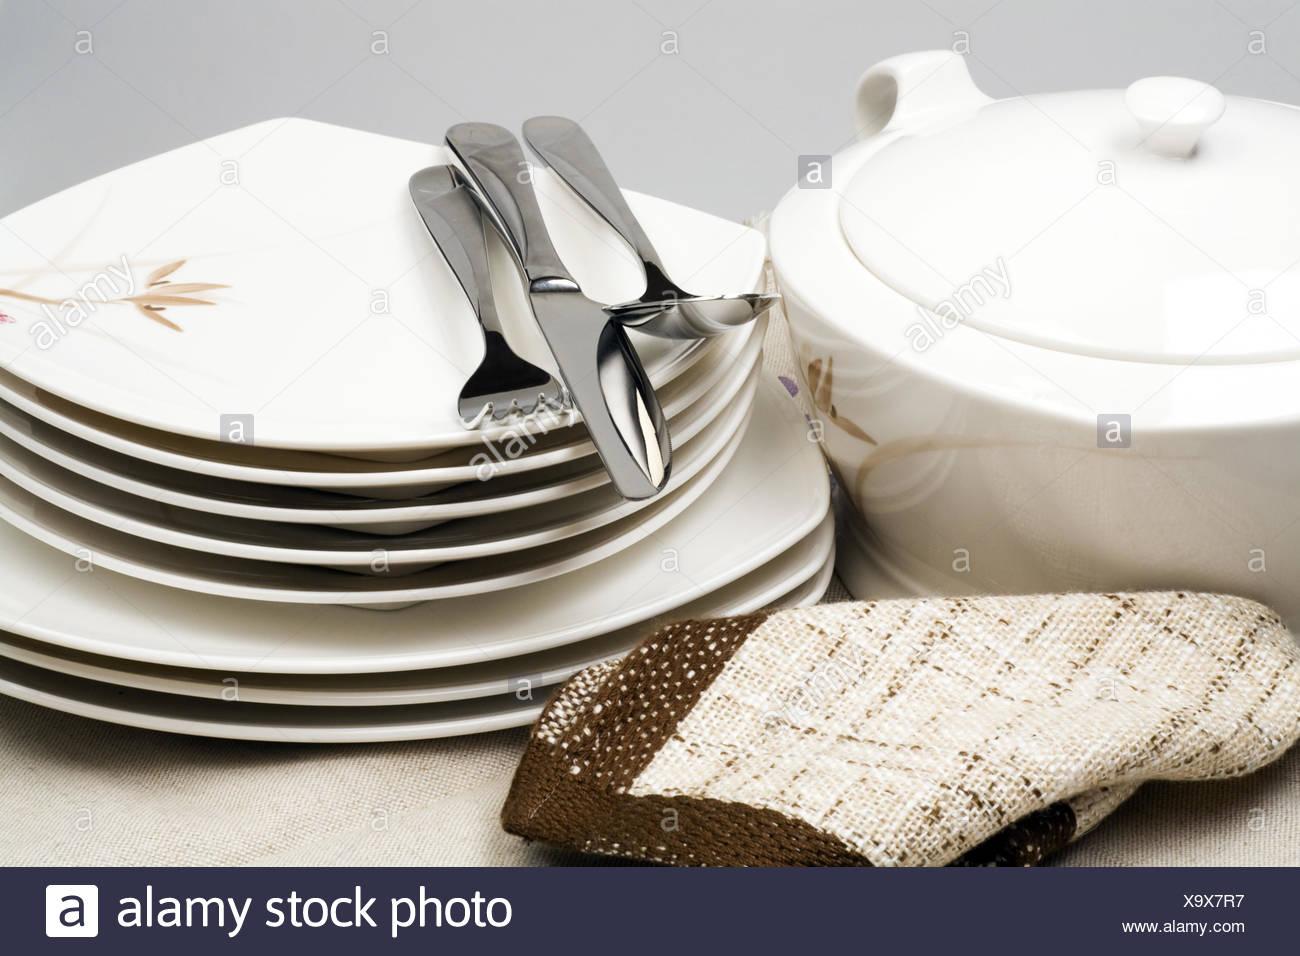 Pure ware and napkins in home cuisine - Stock Image